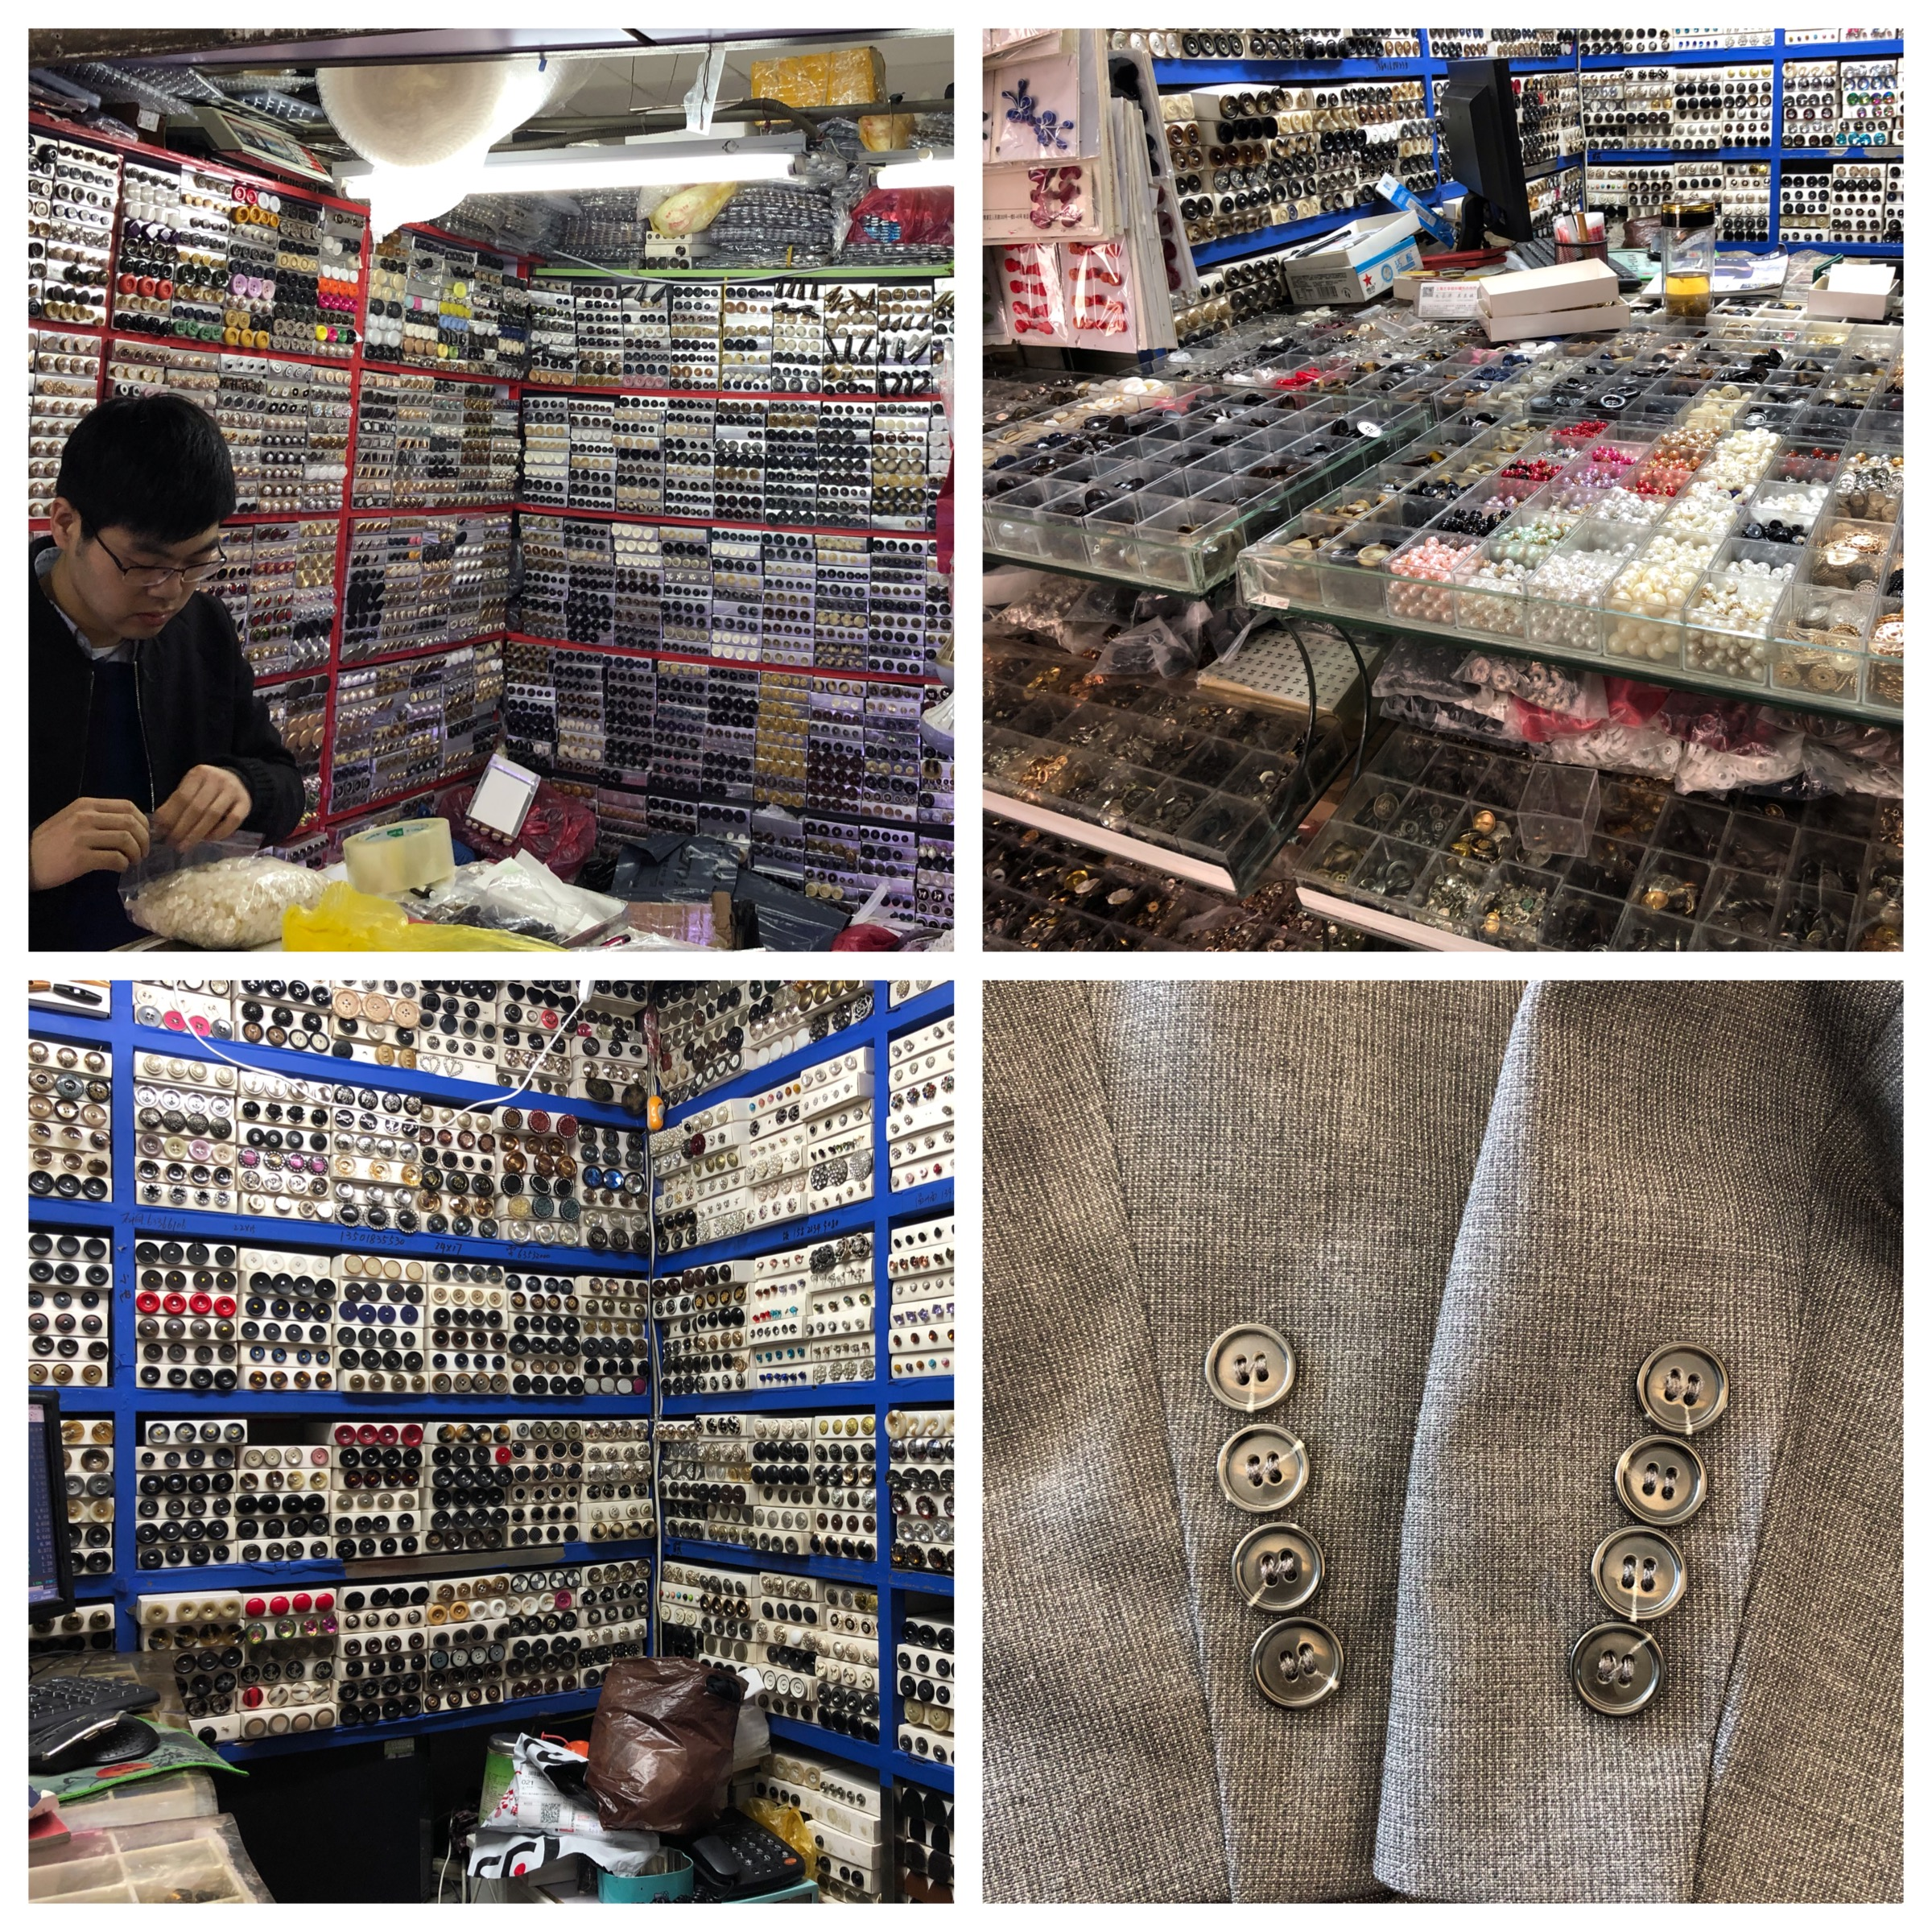 Button shopping at the Button Building and Christoph's fixed jacket. The simplest of tasks in China can turn into the biggest feats.